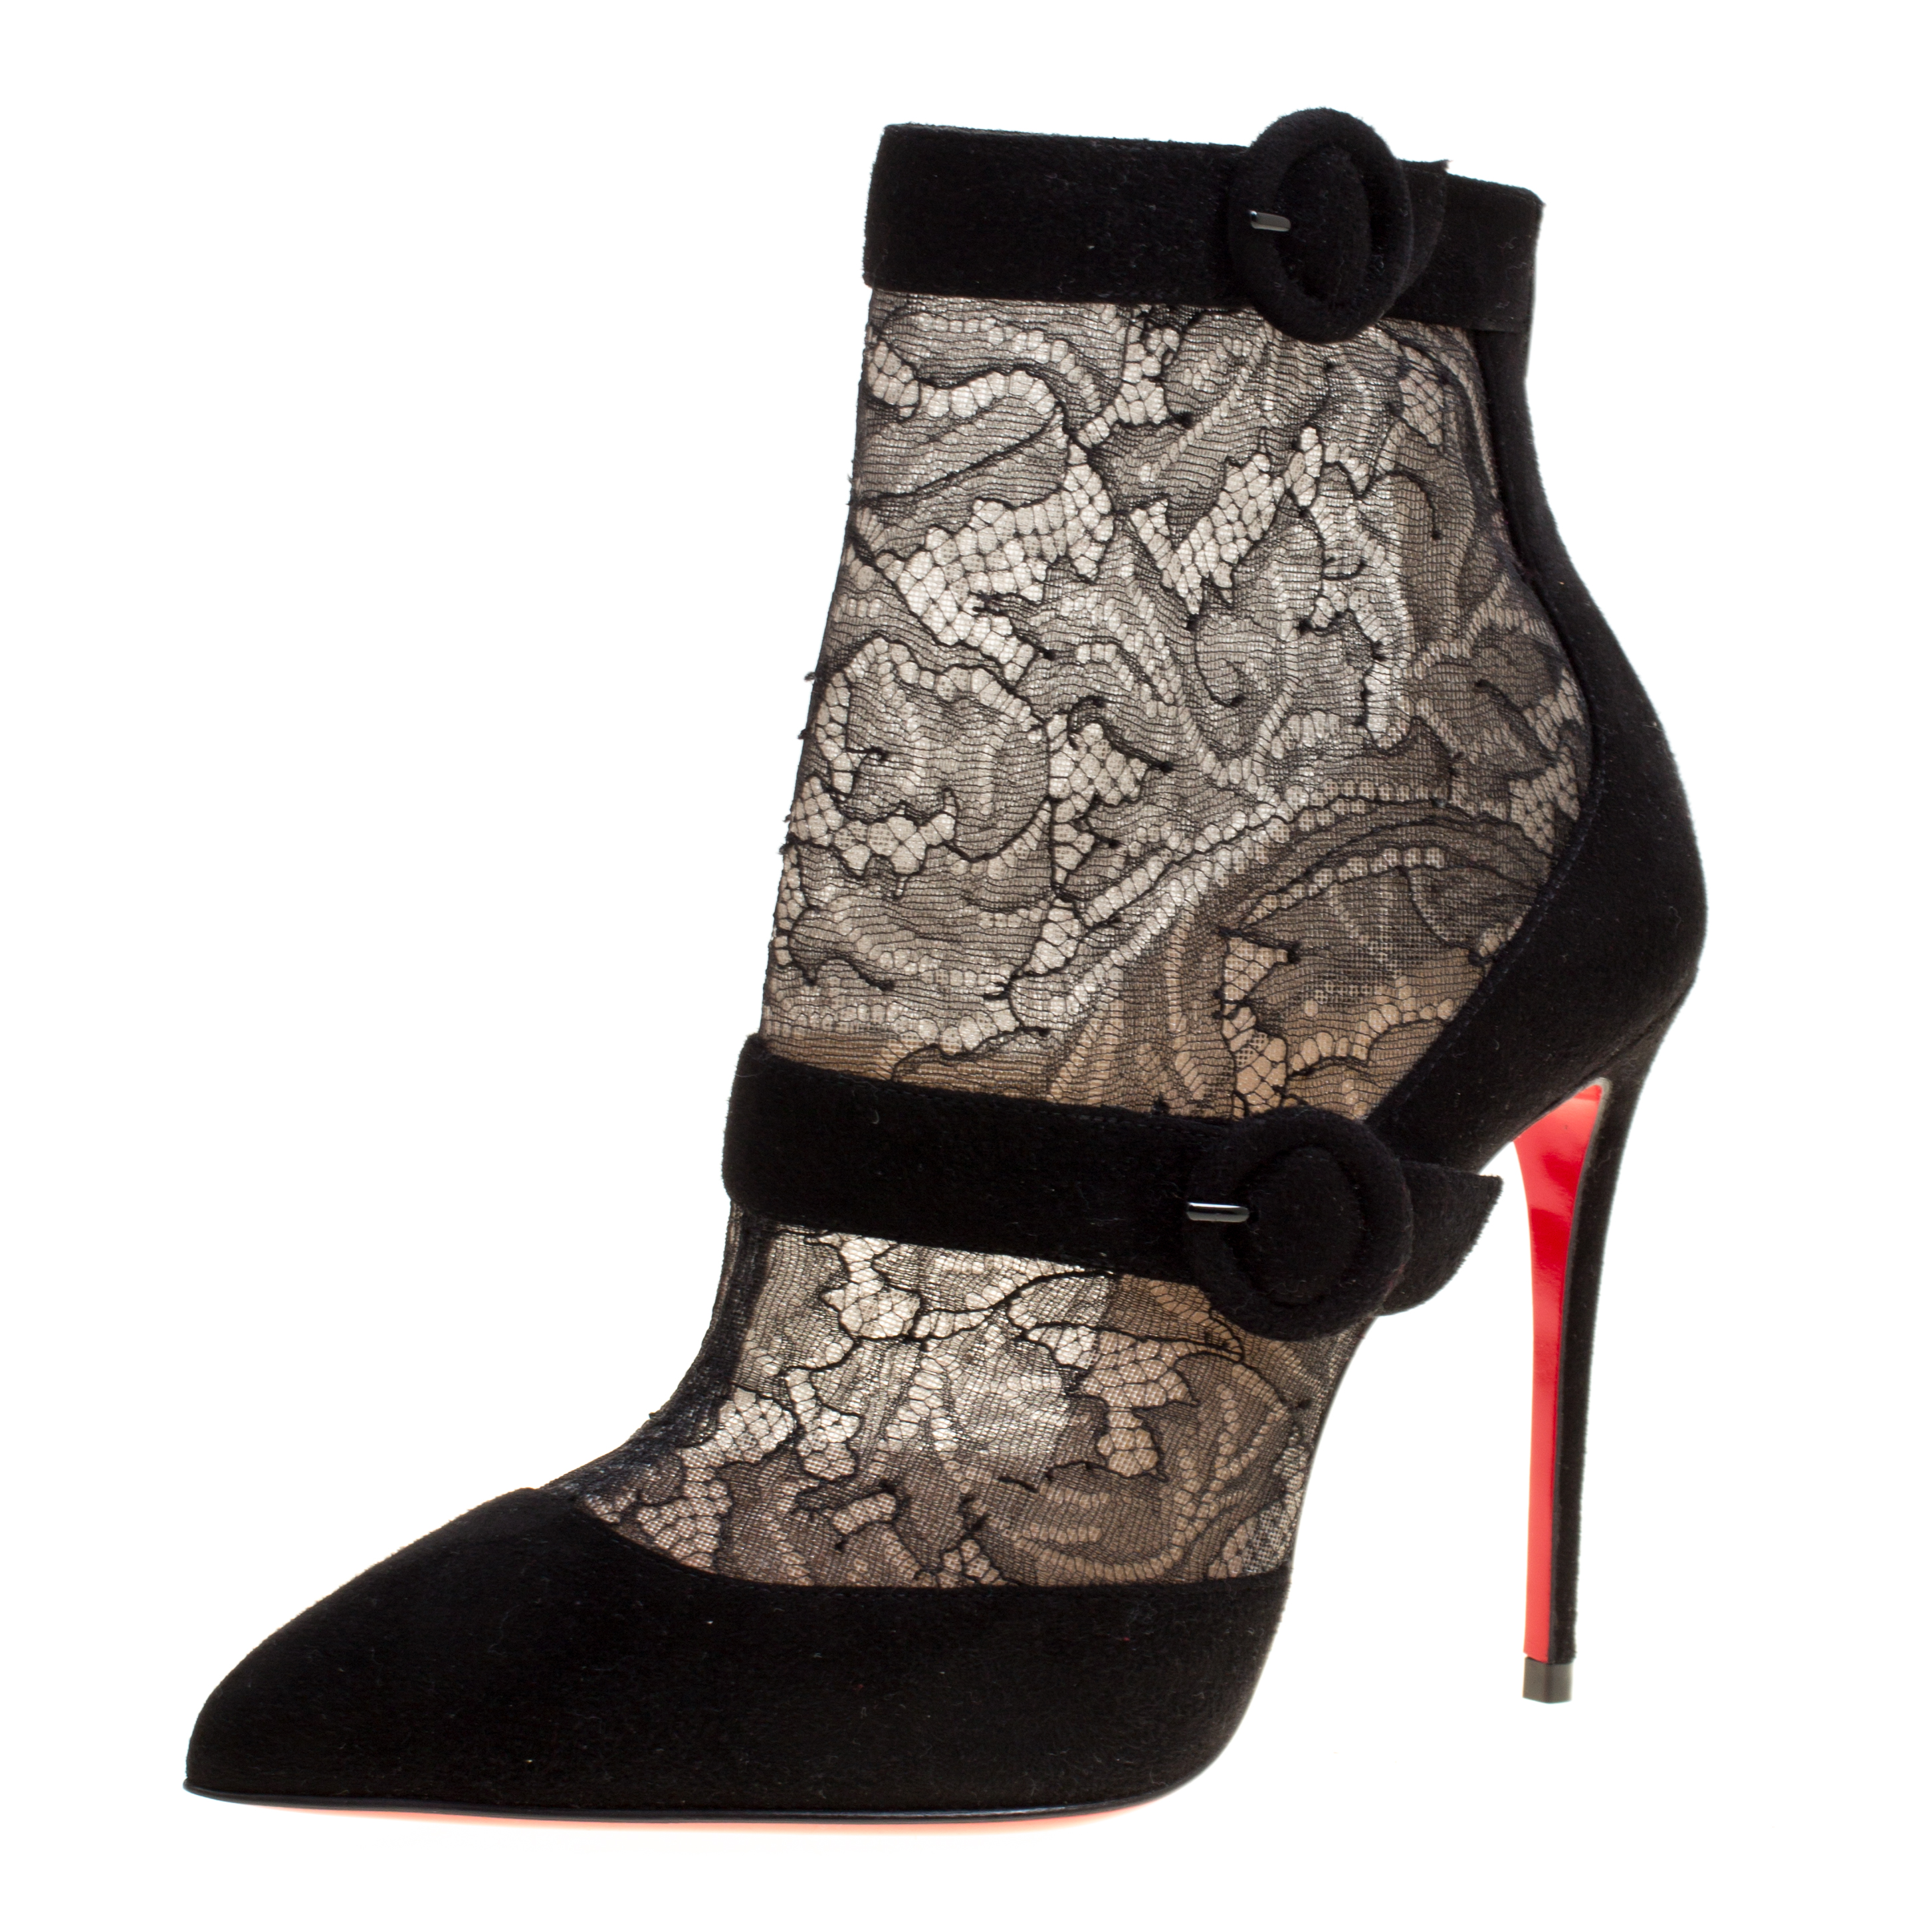 3bbc4d919ee ... Christian Louboutin Black Lace and Suede Boteboot Pointed Toe Ankle  Booties Size 36. nextprev. prevnext